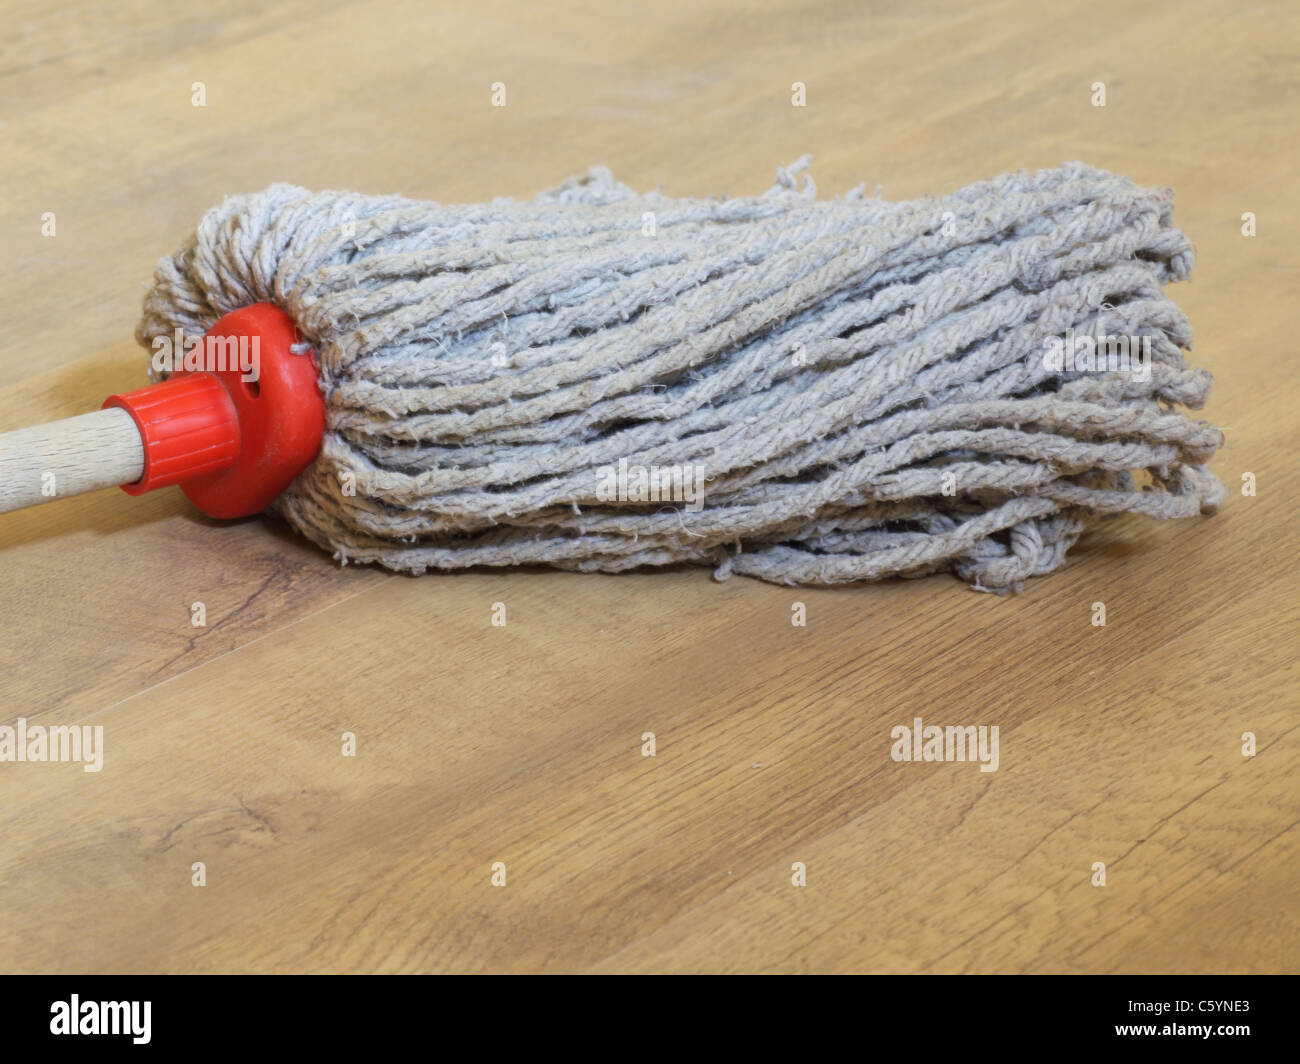 Mop in the room plank flooring - Stock Image